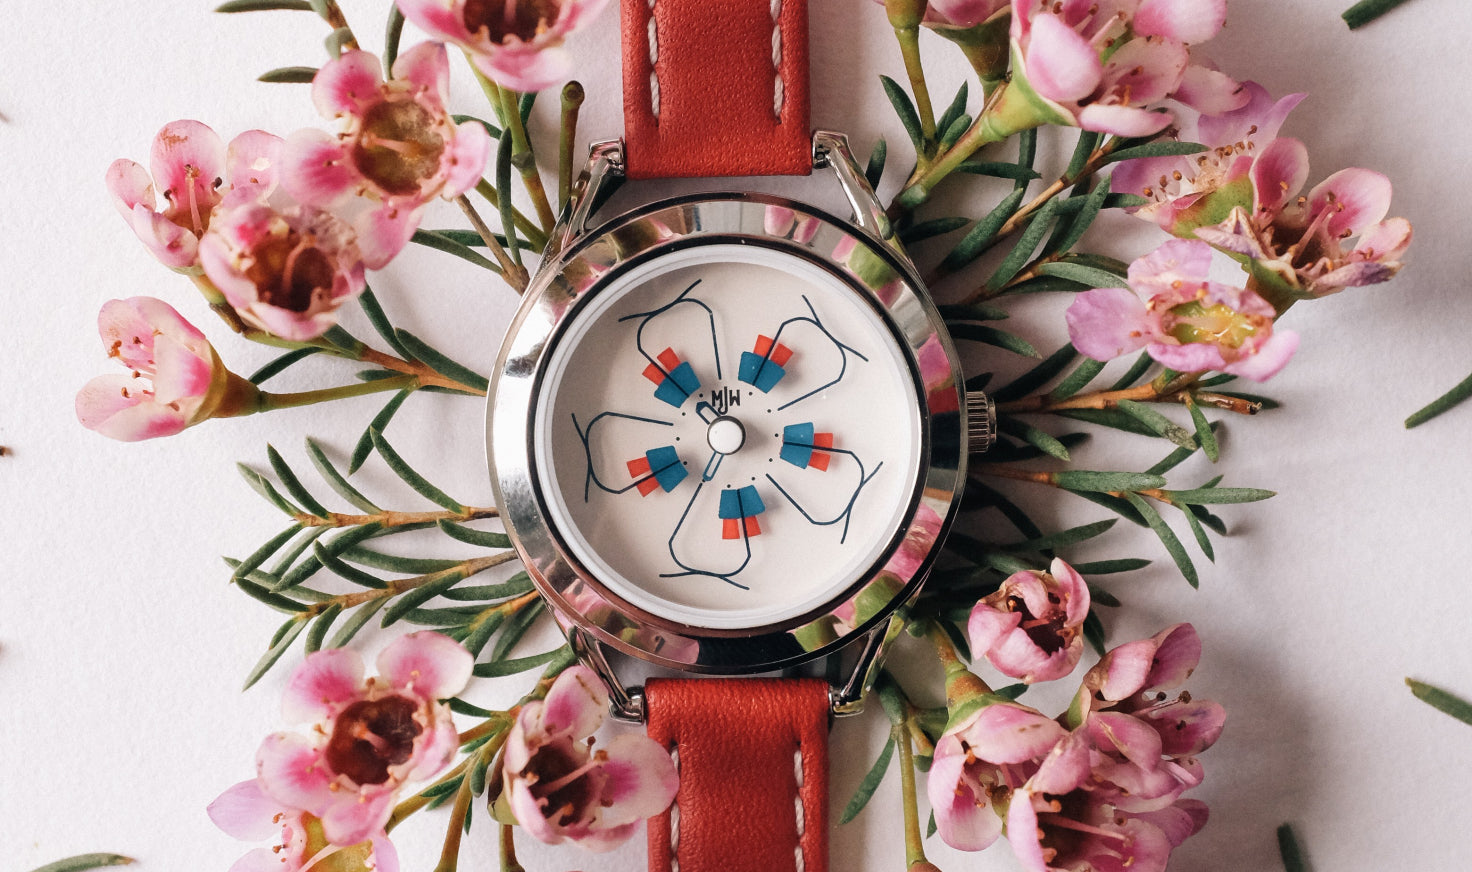 close up of Phlox watch